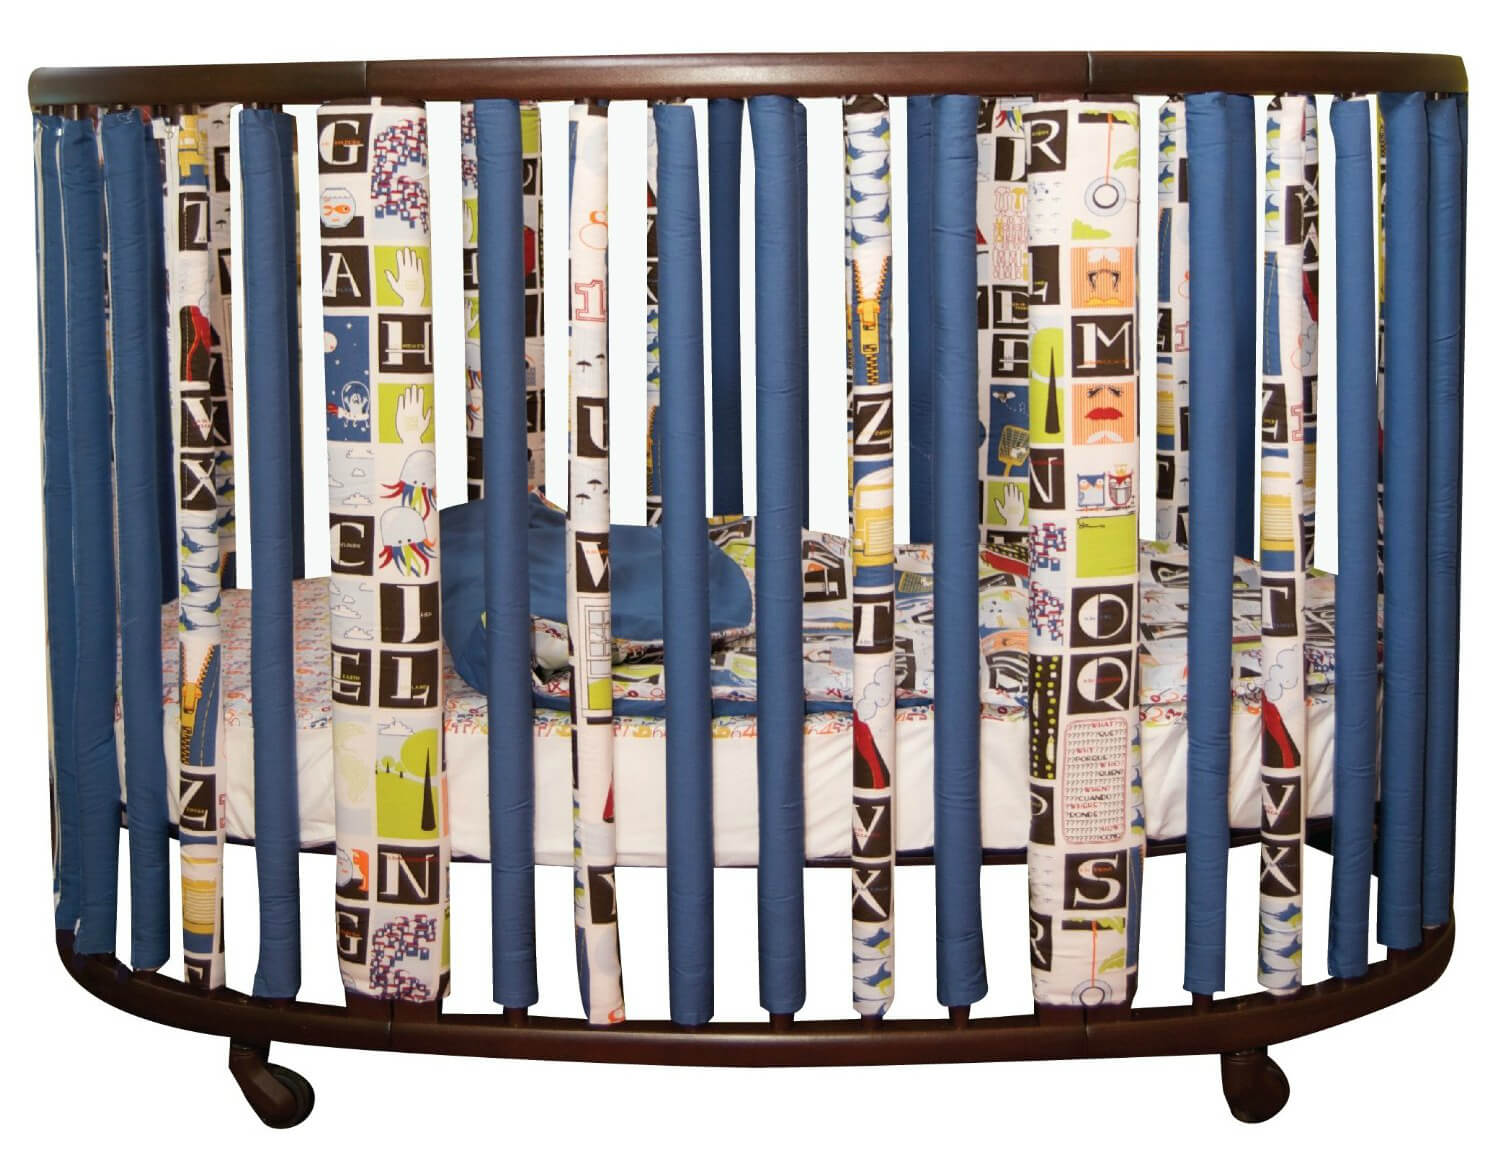 Baby crib for sale tulsa - Wonder Bumpers For Oval Cribs Courtesy Of Go Mama Go Designs Will Ensure Peace Of